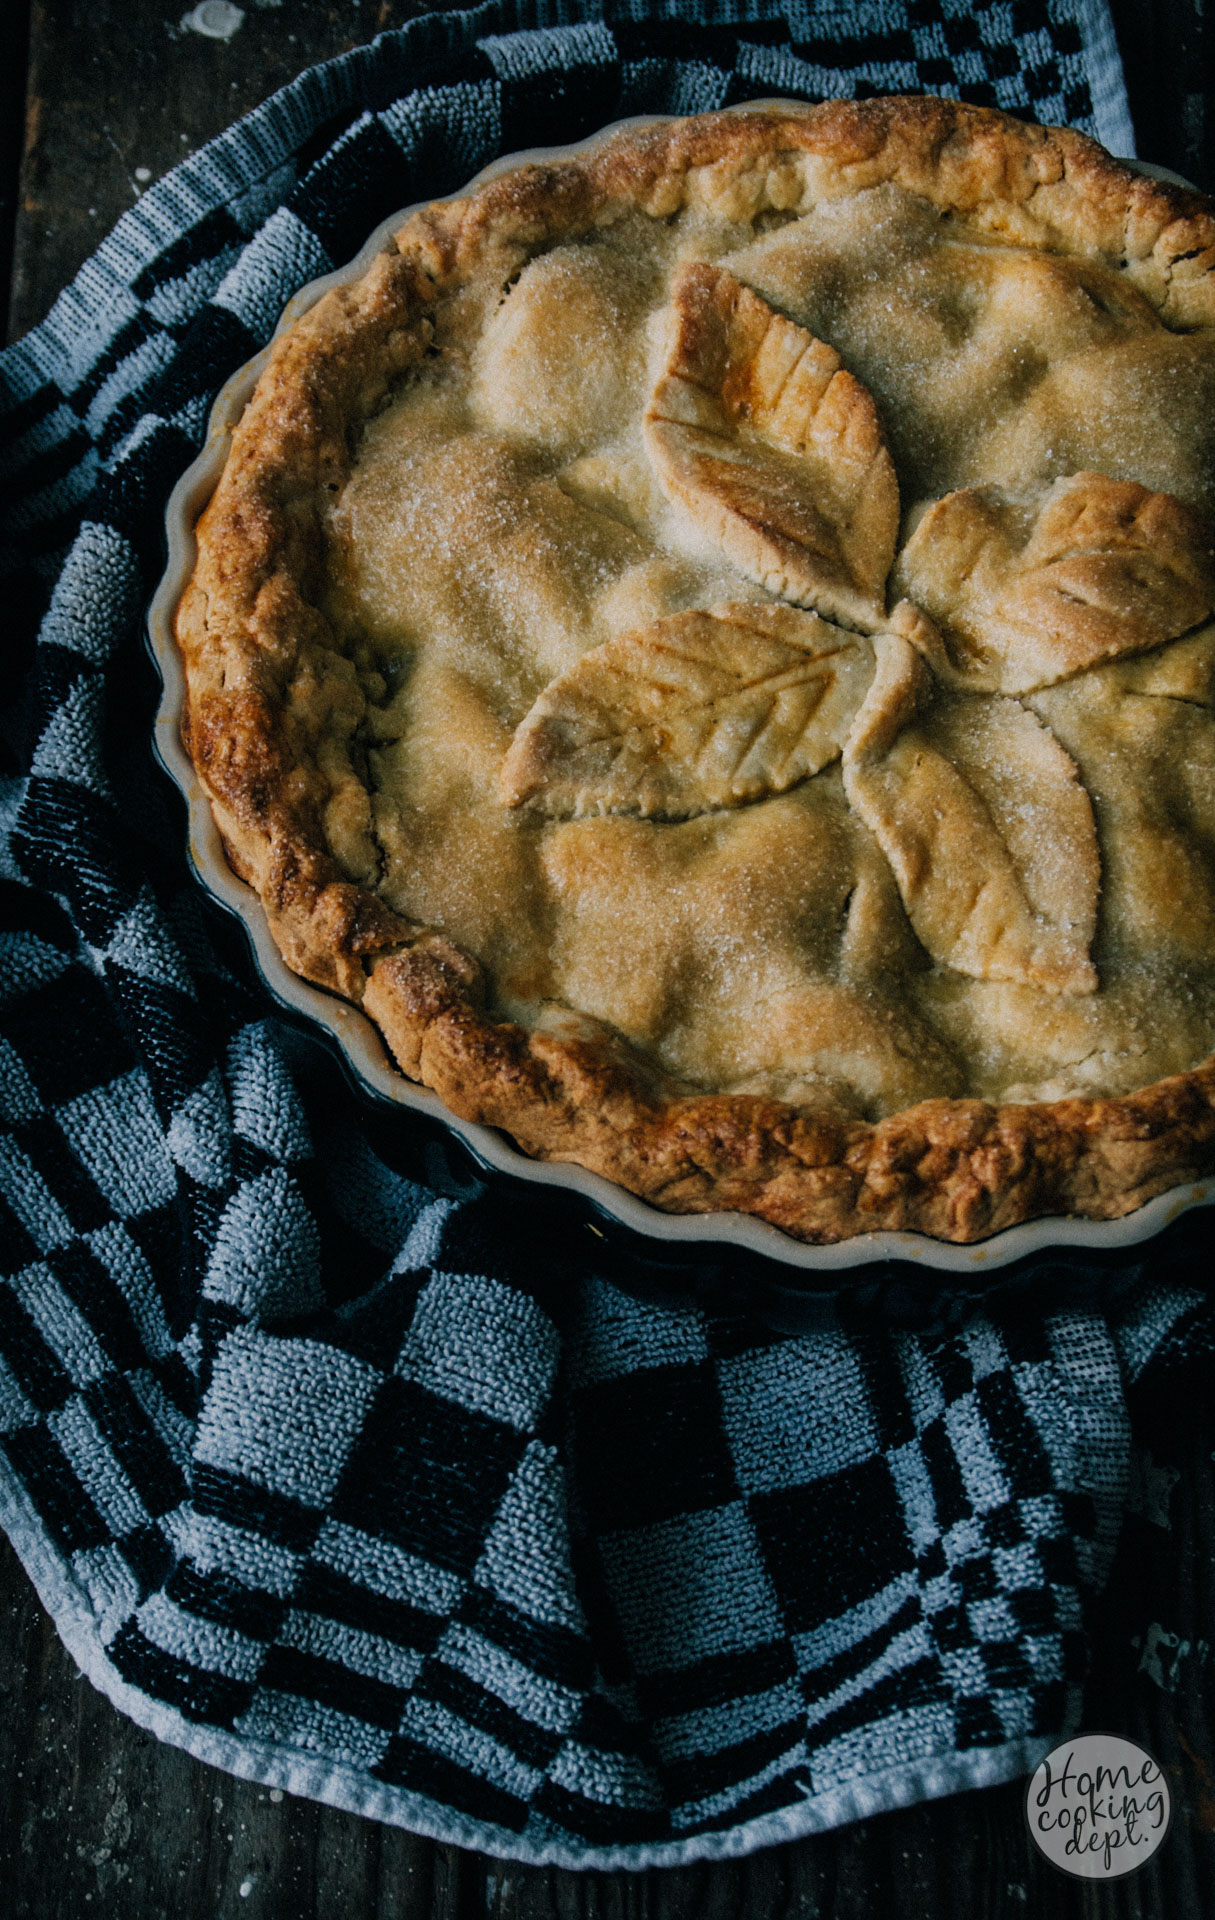 Comfort apple pie